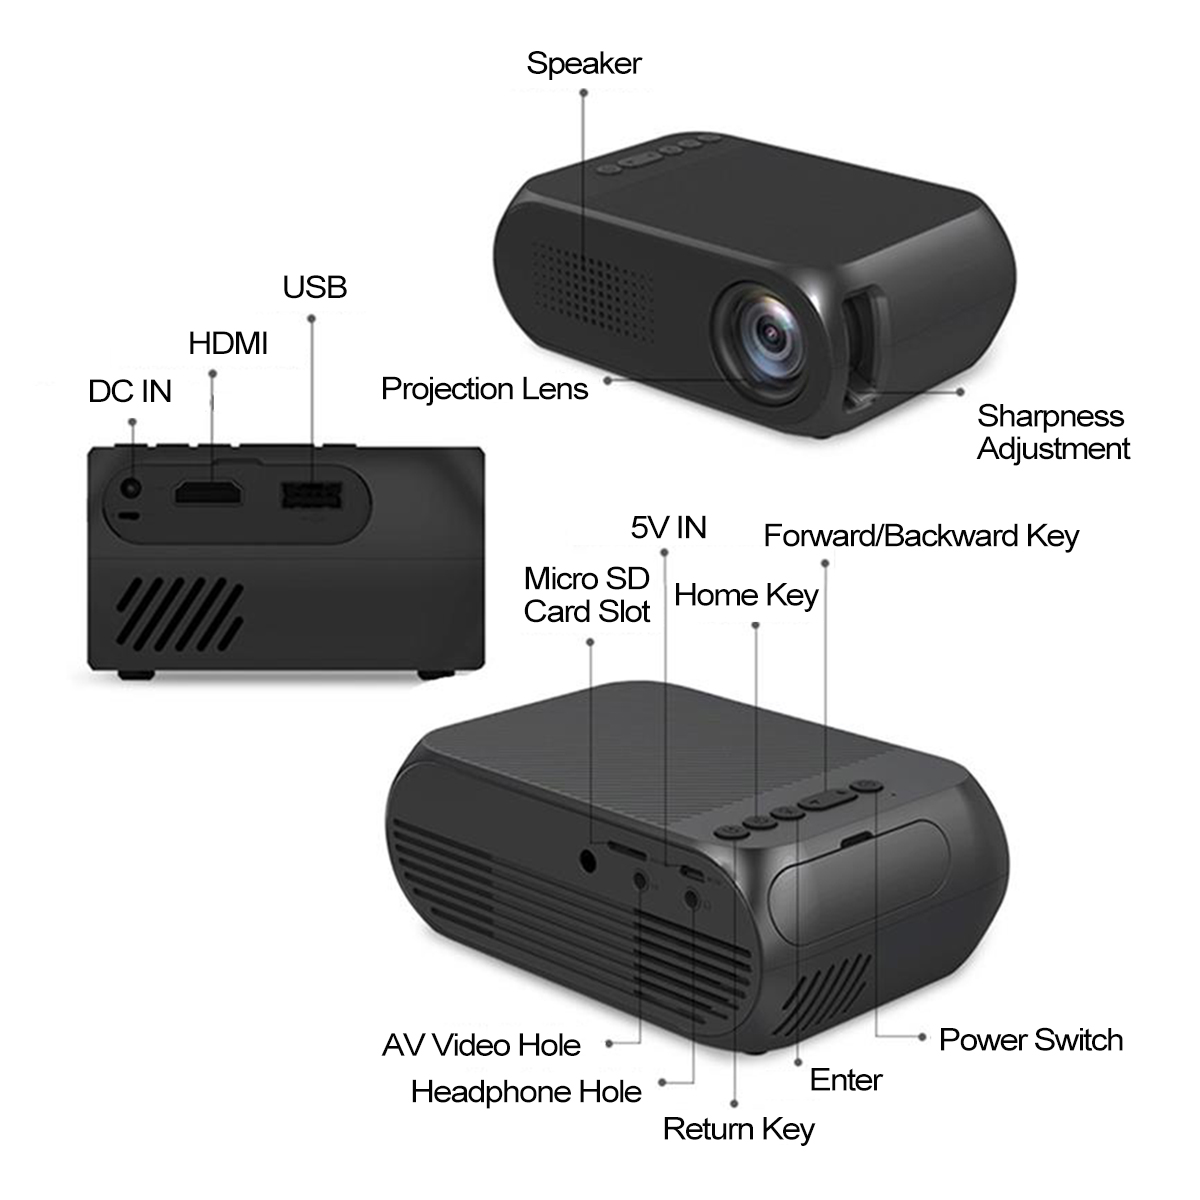 YG-320 Mini LCD LED Projector 400-600 Lumens 320 x 240 Pixels 1080P Home Theater Cinema Projector